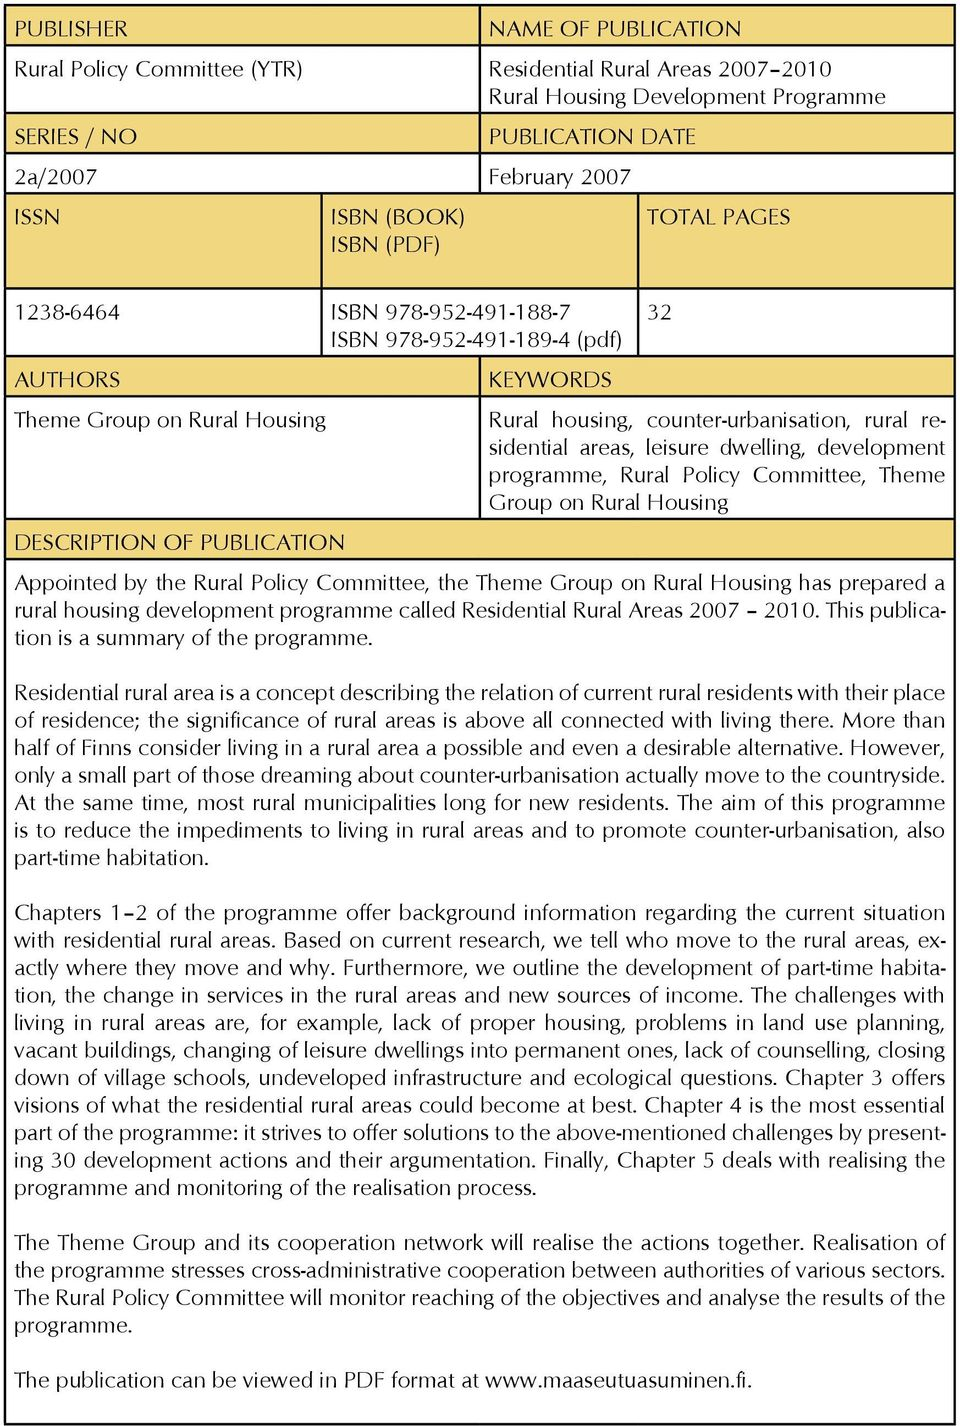 rural residential areas, leisure dwelling, development programme, Rural Policy Committee, Theme Group on Rural Housing Appointed by the Rural Policy Committee, the Theme Group on Rural Housing has